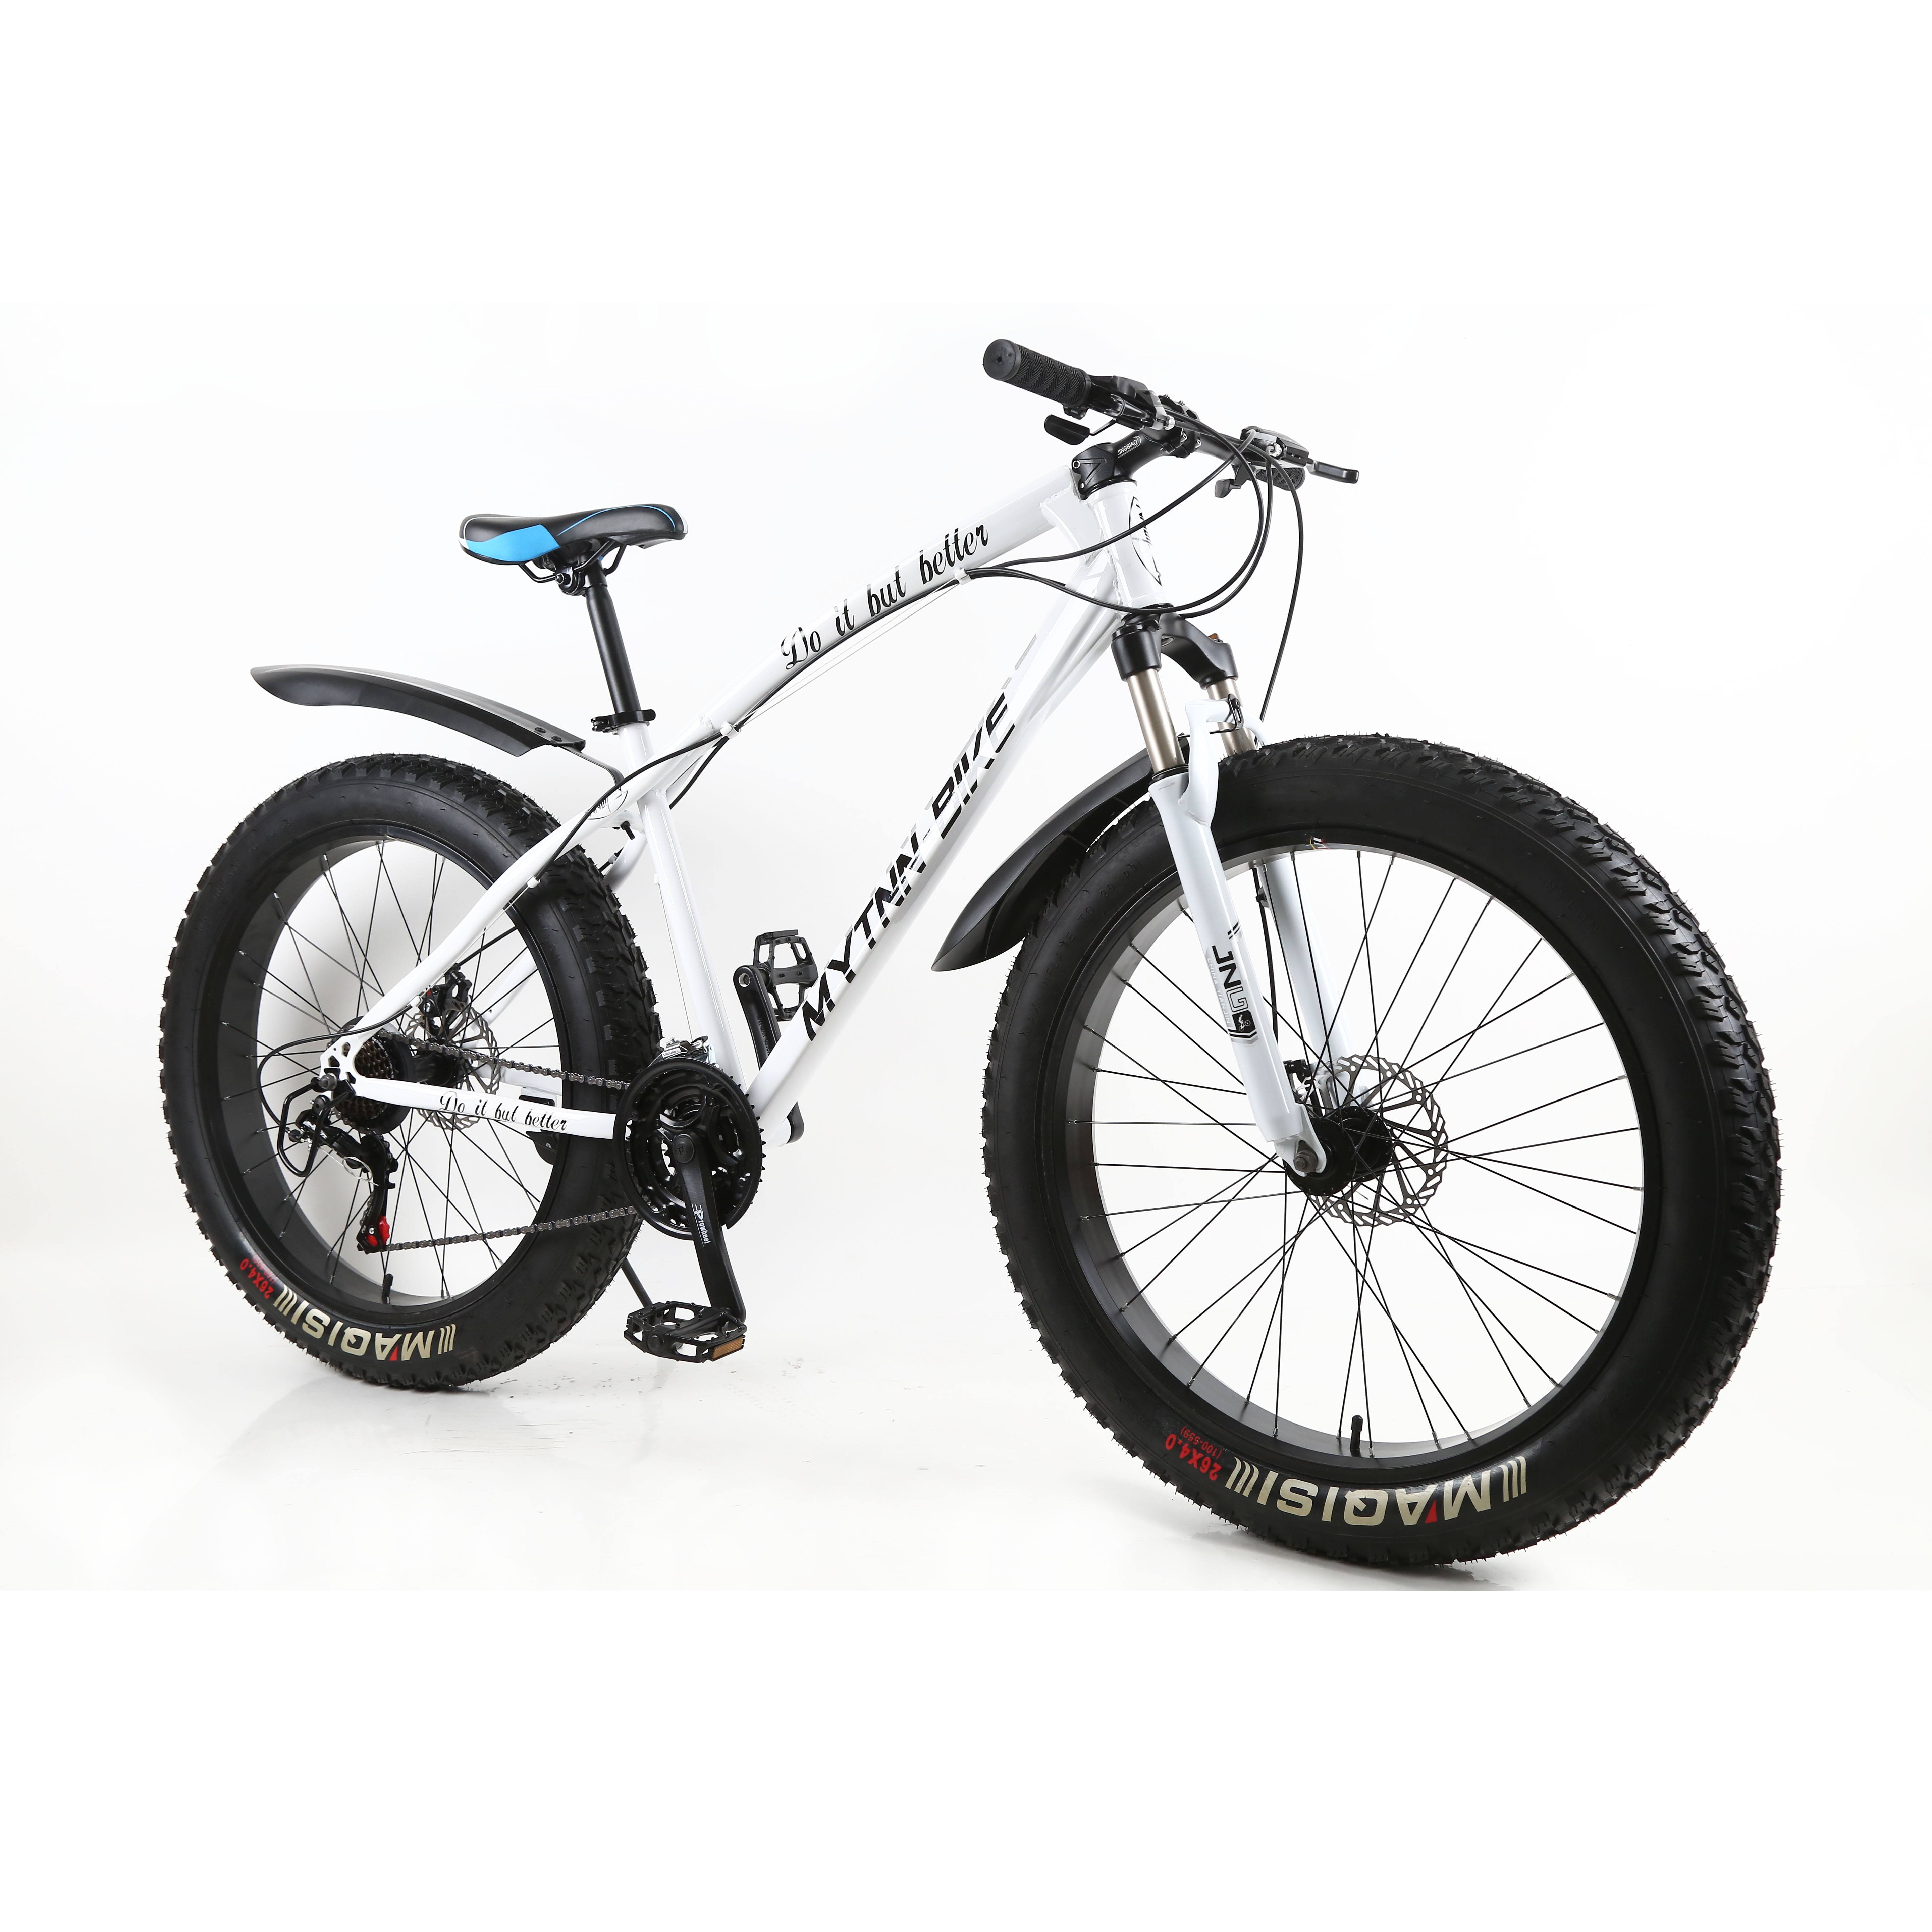 fahrrad fatbike mytnn 21 gang shimano kettenschaltung mit. Black Bedroom Furniture Sets. Home Design Ideas